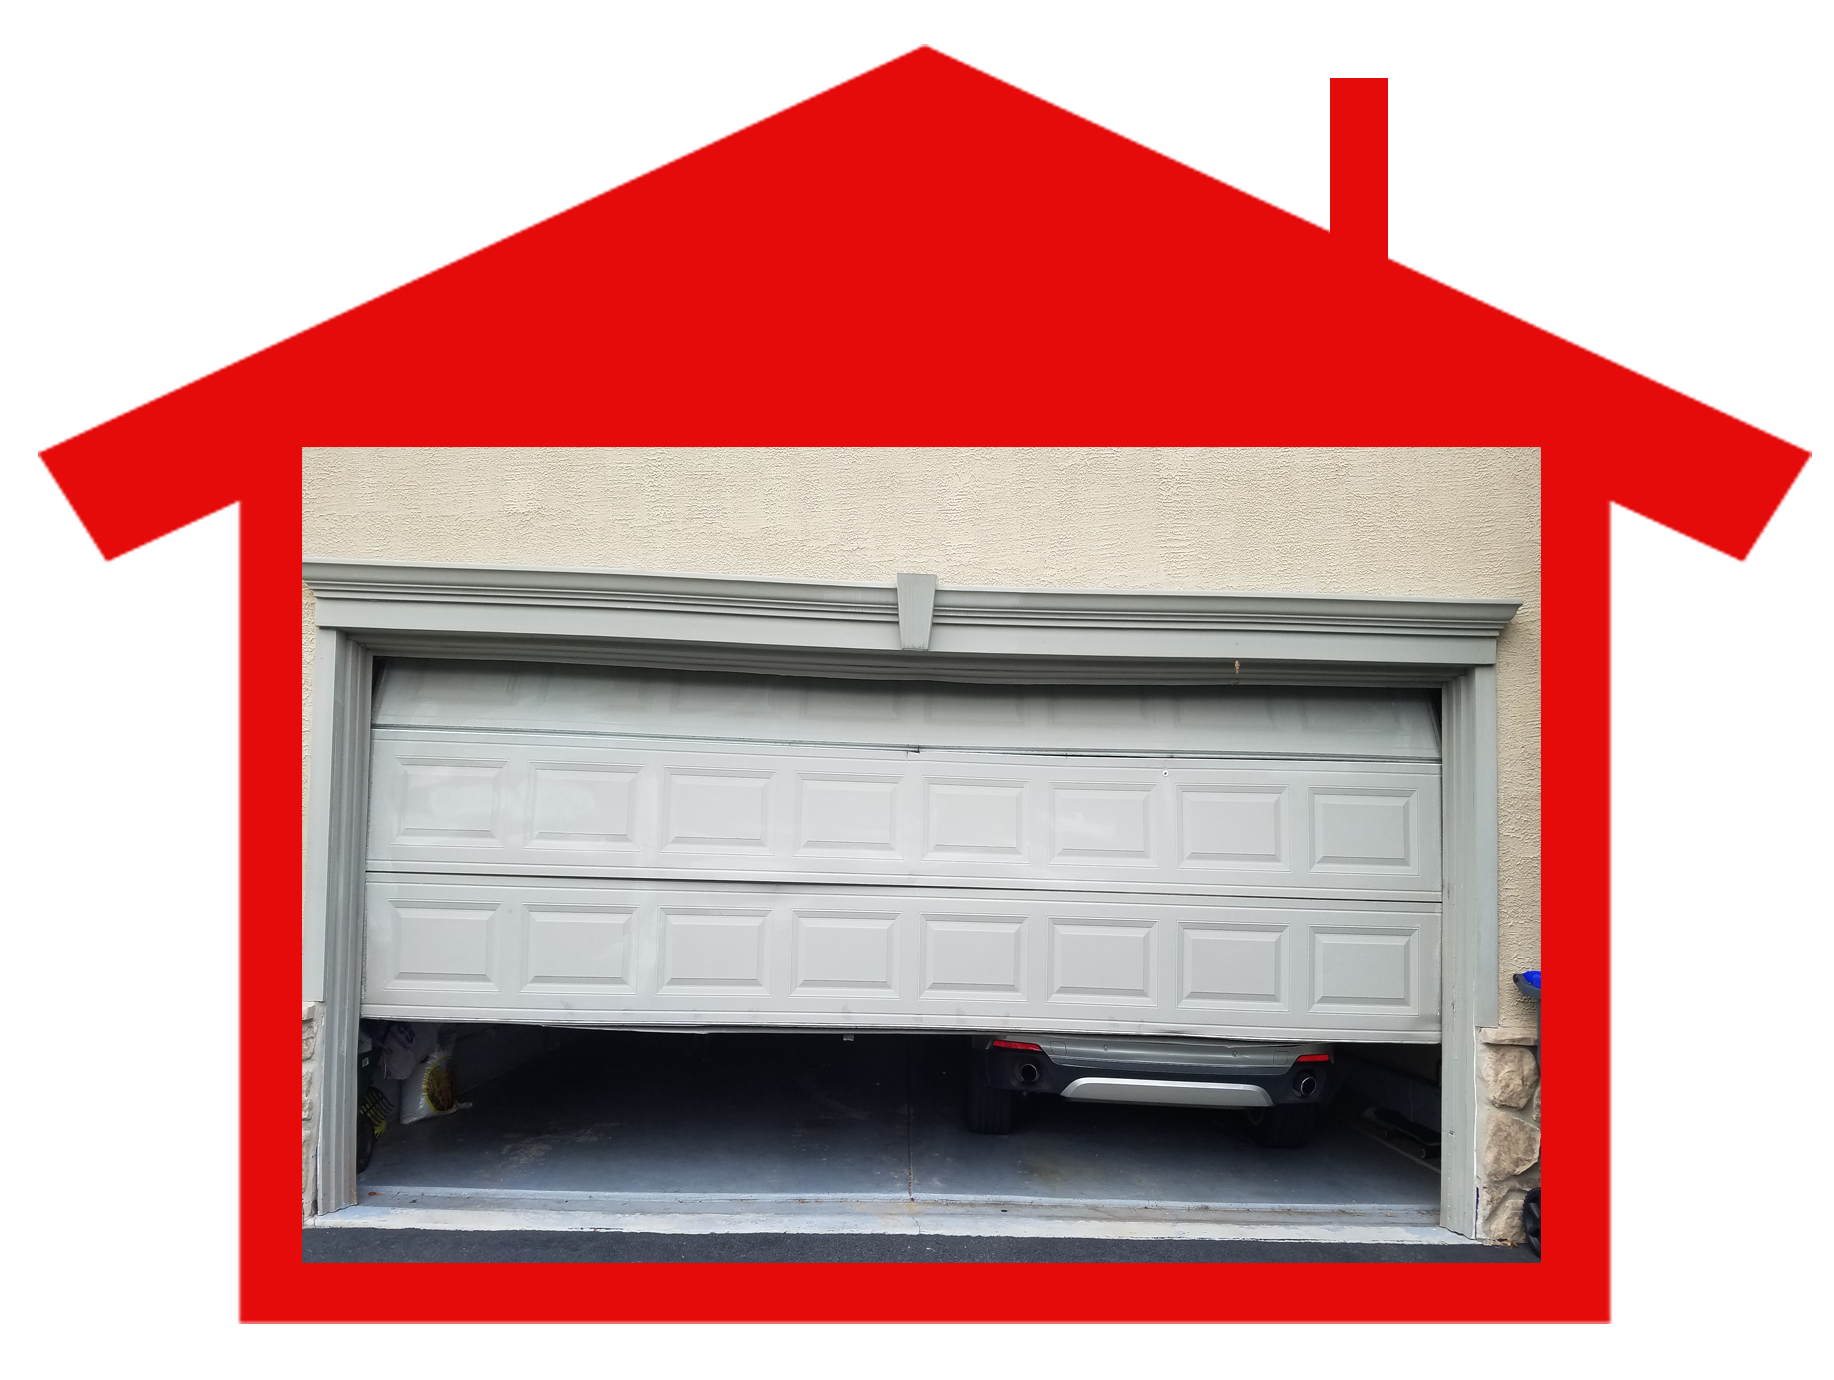 Garage opener sales installation repair we will examine your garage door opener and identify the problem rubansaba